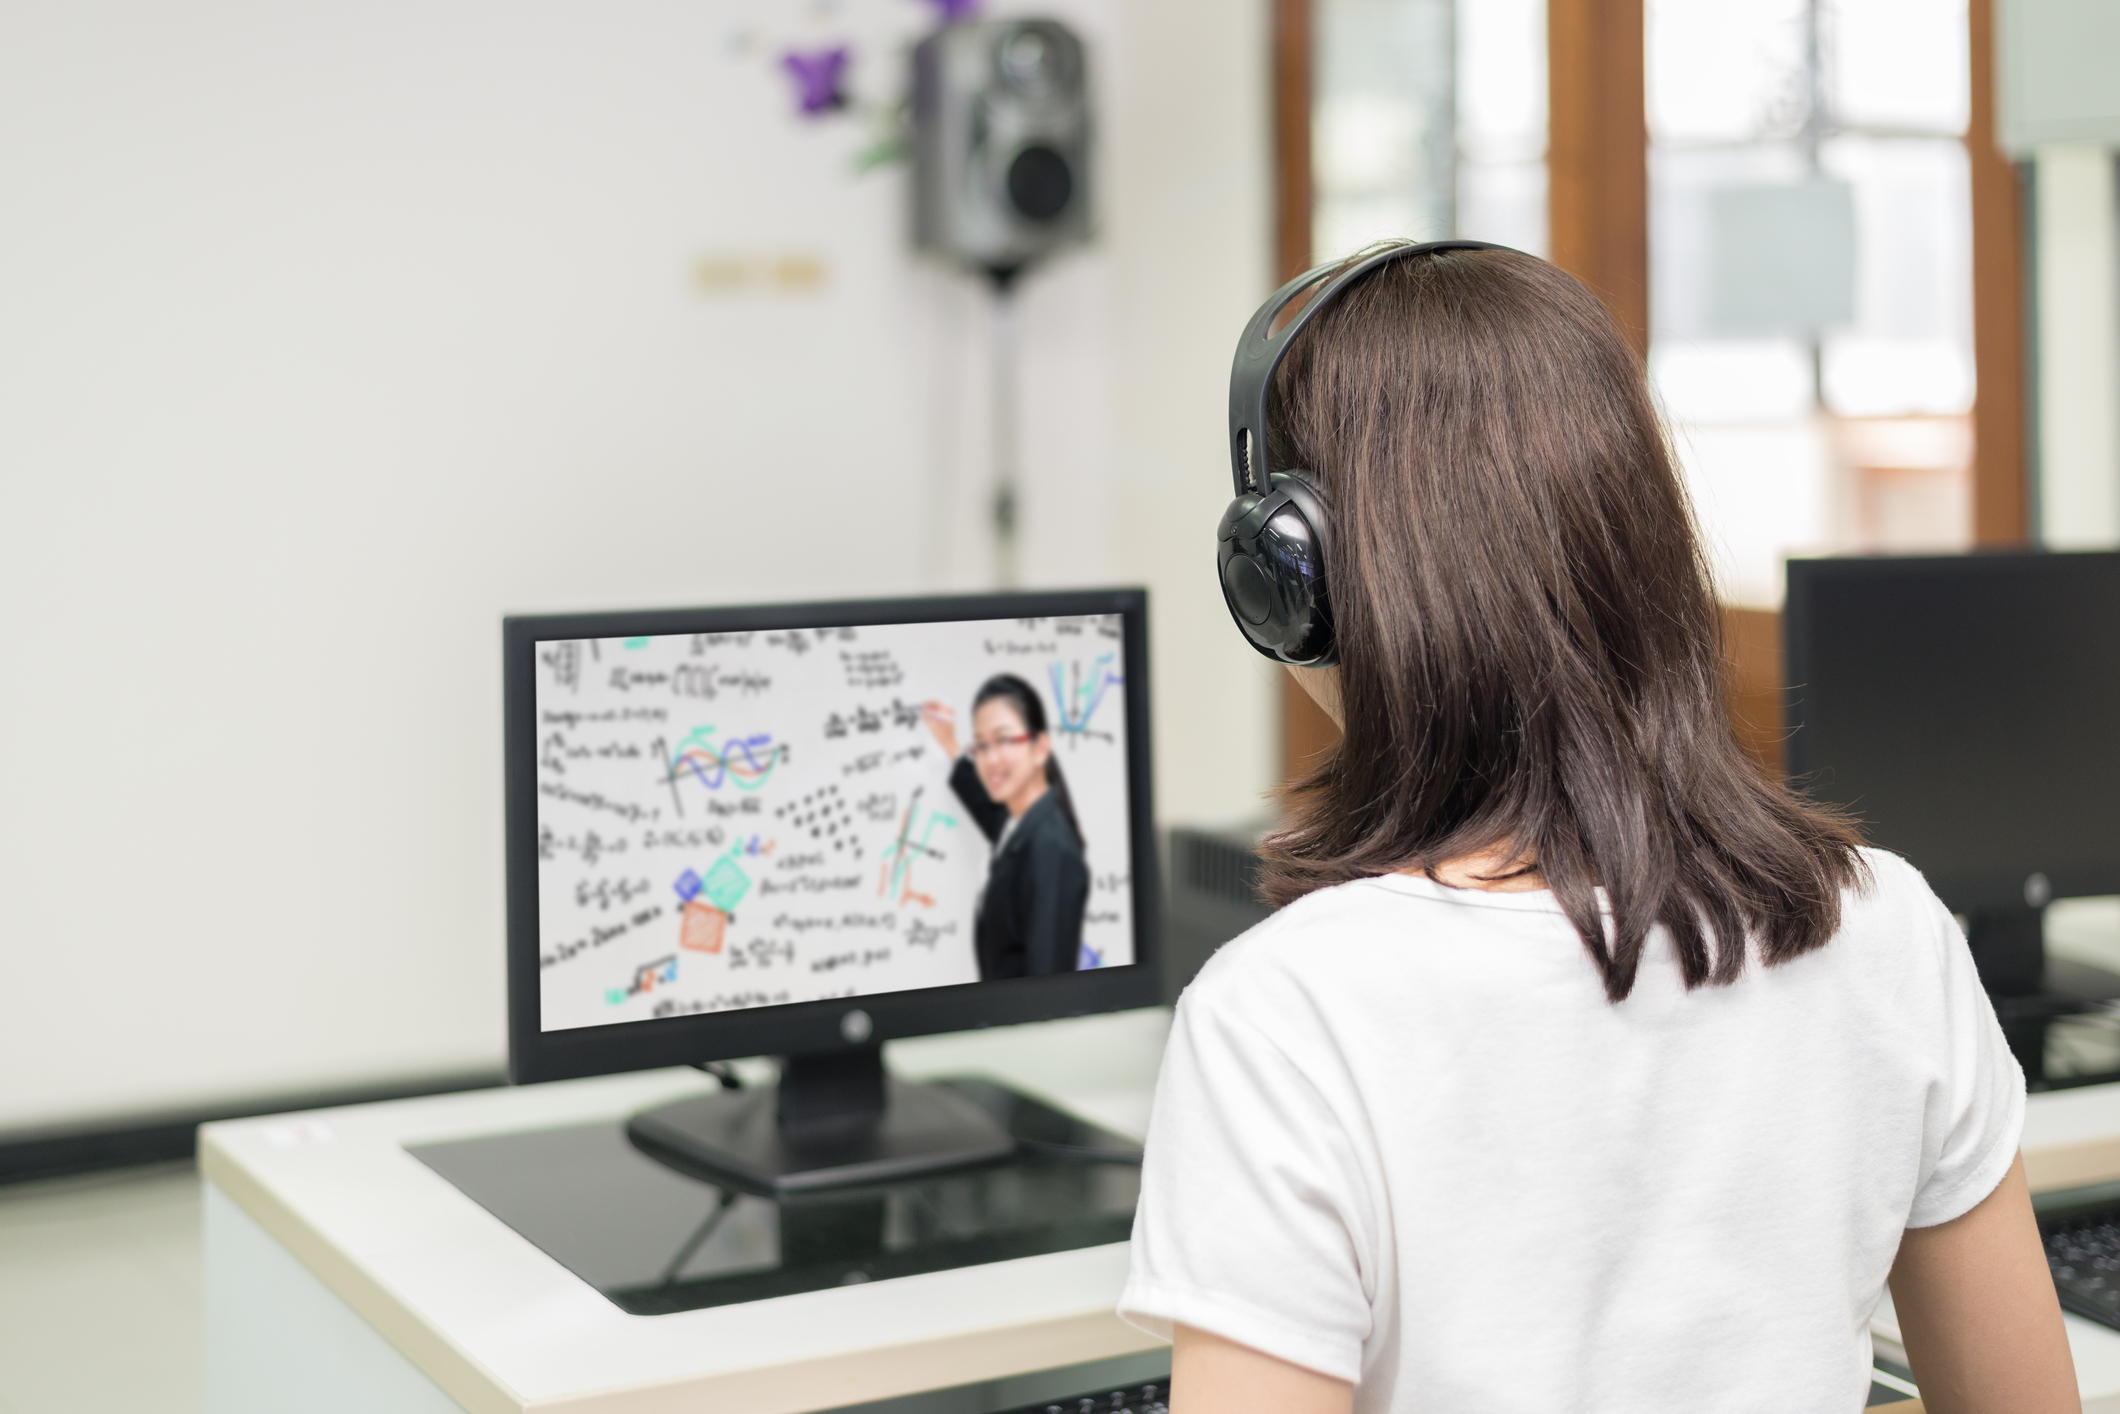 Coursera   Build Skills with Online Courses from Top Institutions